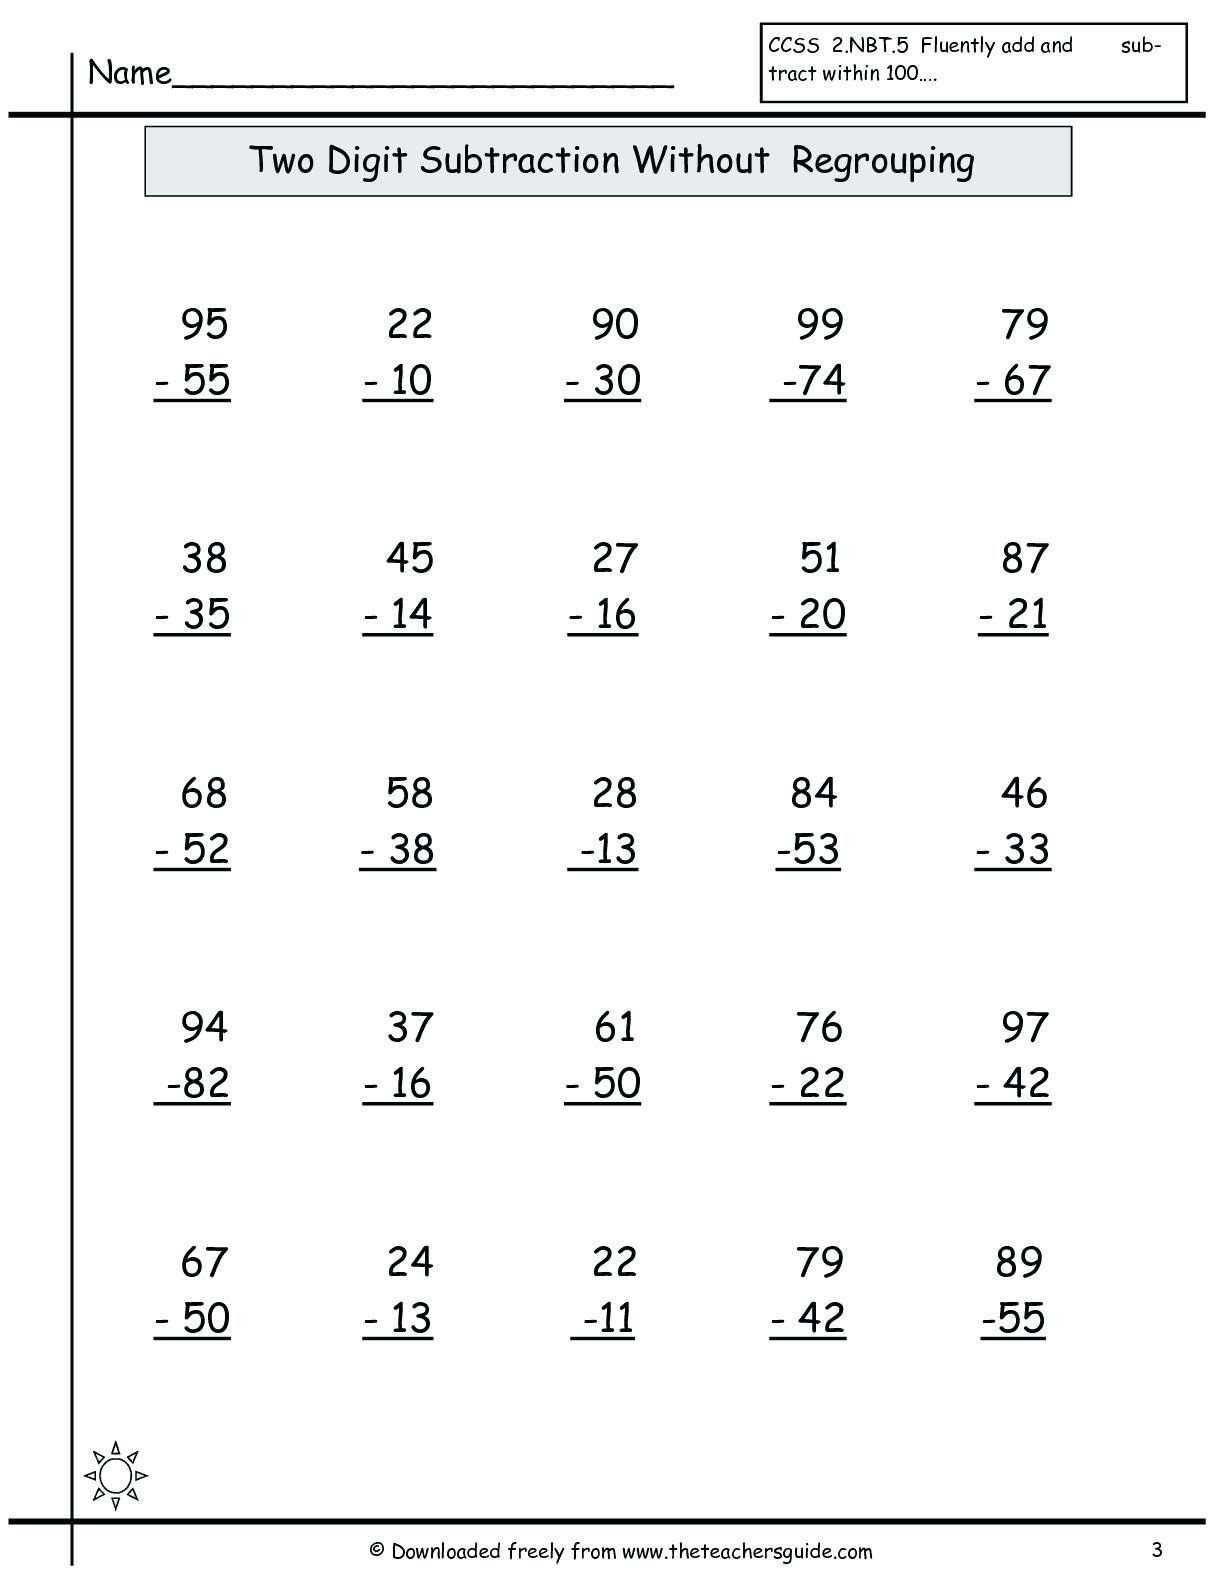 Subtract Across Zeros Worksheet Subtracting Across Zeros Worksheet Grade 3 Math Worksheets Subtraction Worksheets Subtraction